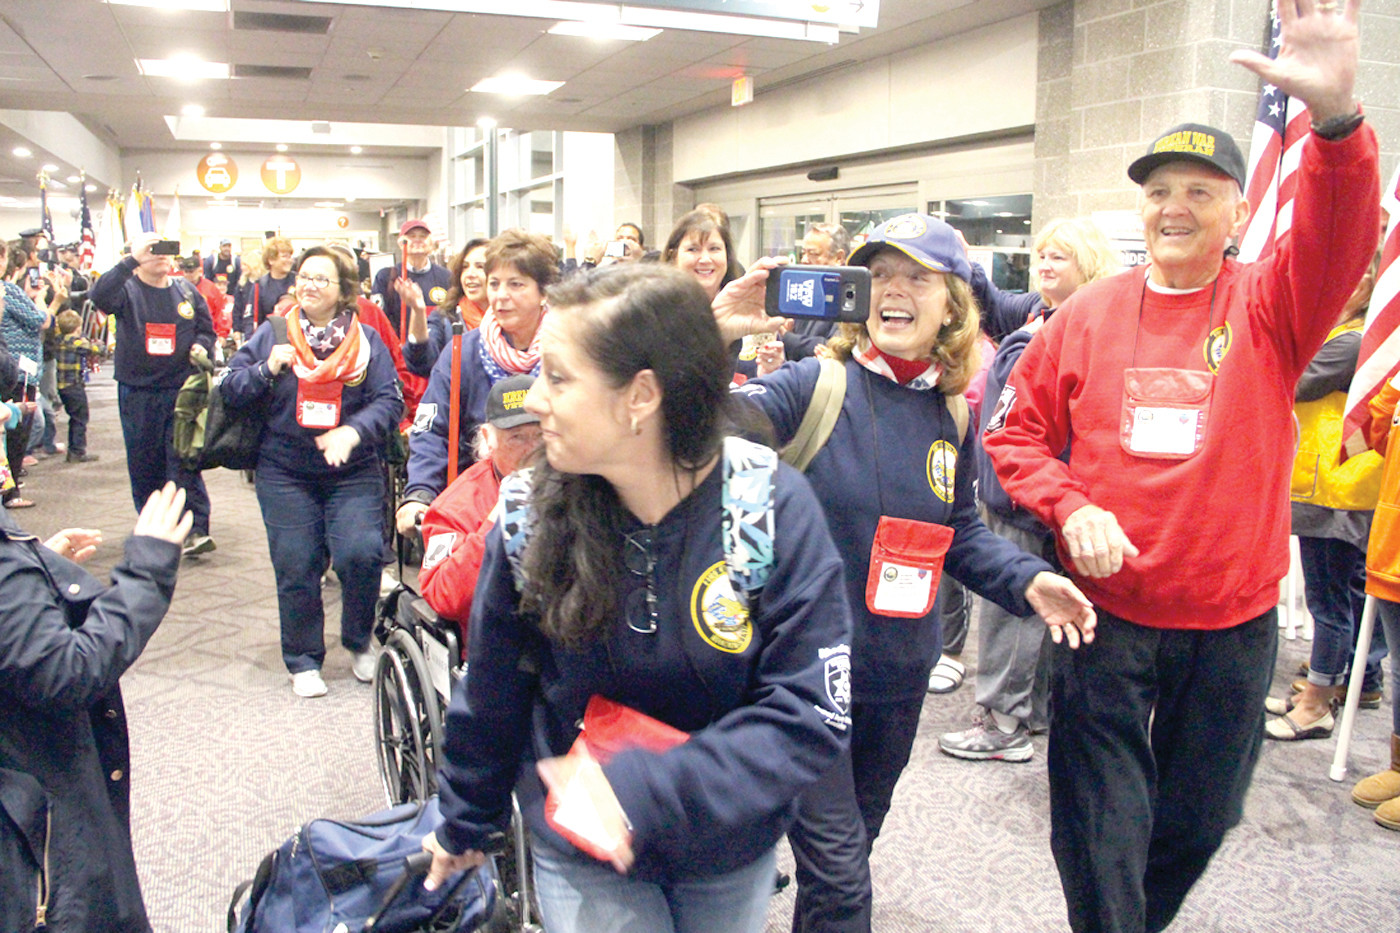 CHEERED BY MANY: Veterans and their guardians were given a hero's welcome upon their entrance to the airport terminal.